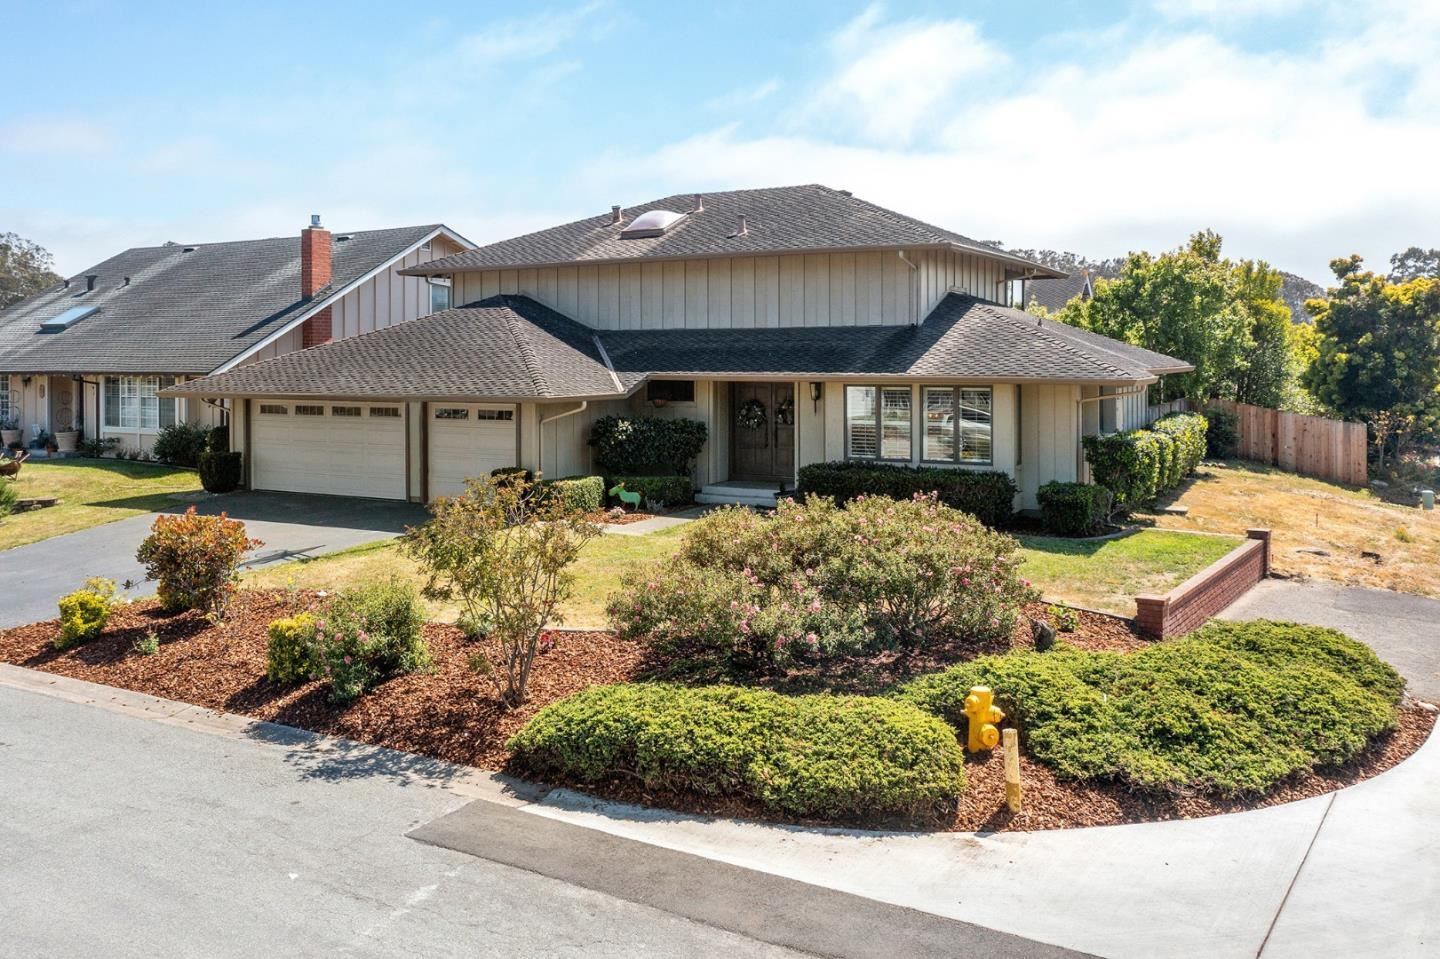 Photo for 33 Le Havre Place, HALF MOON BAY, CA 94019 (MLS # ML81846183)